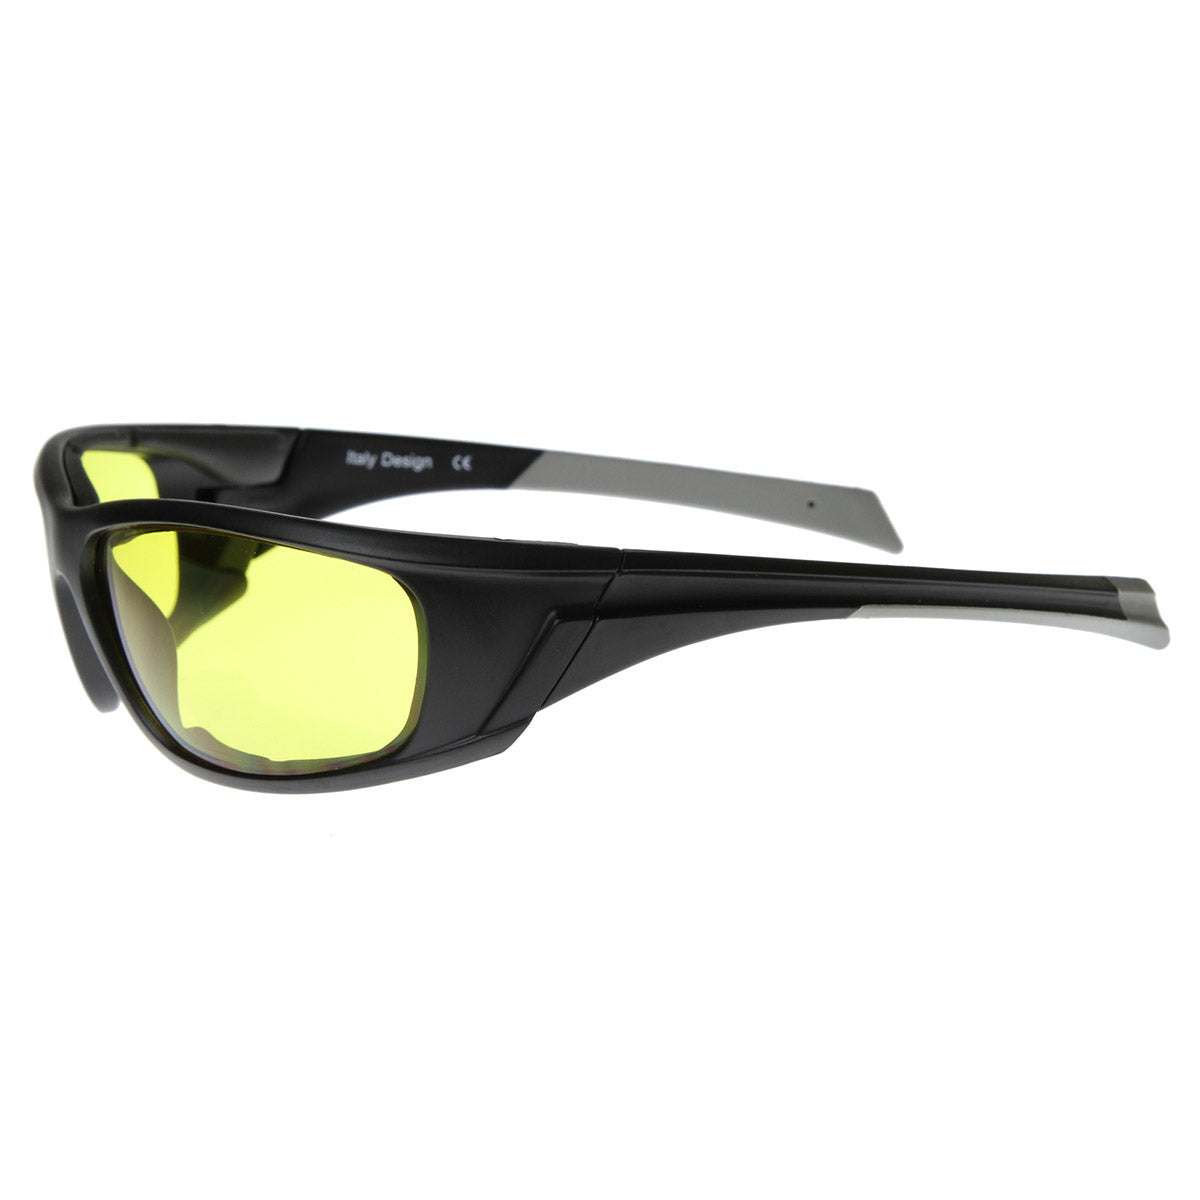 Safety Sports Protective Padded Sunglasses Eyewear Night Riding Glasses